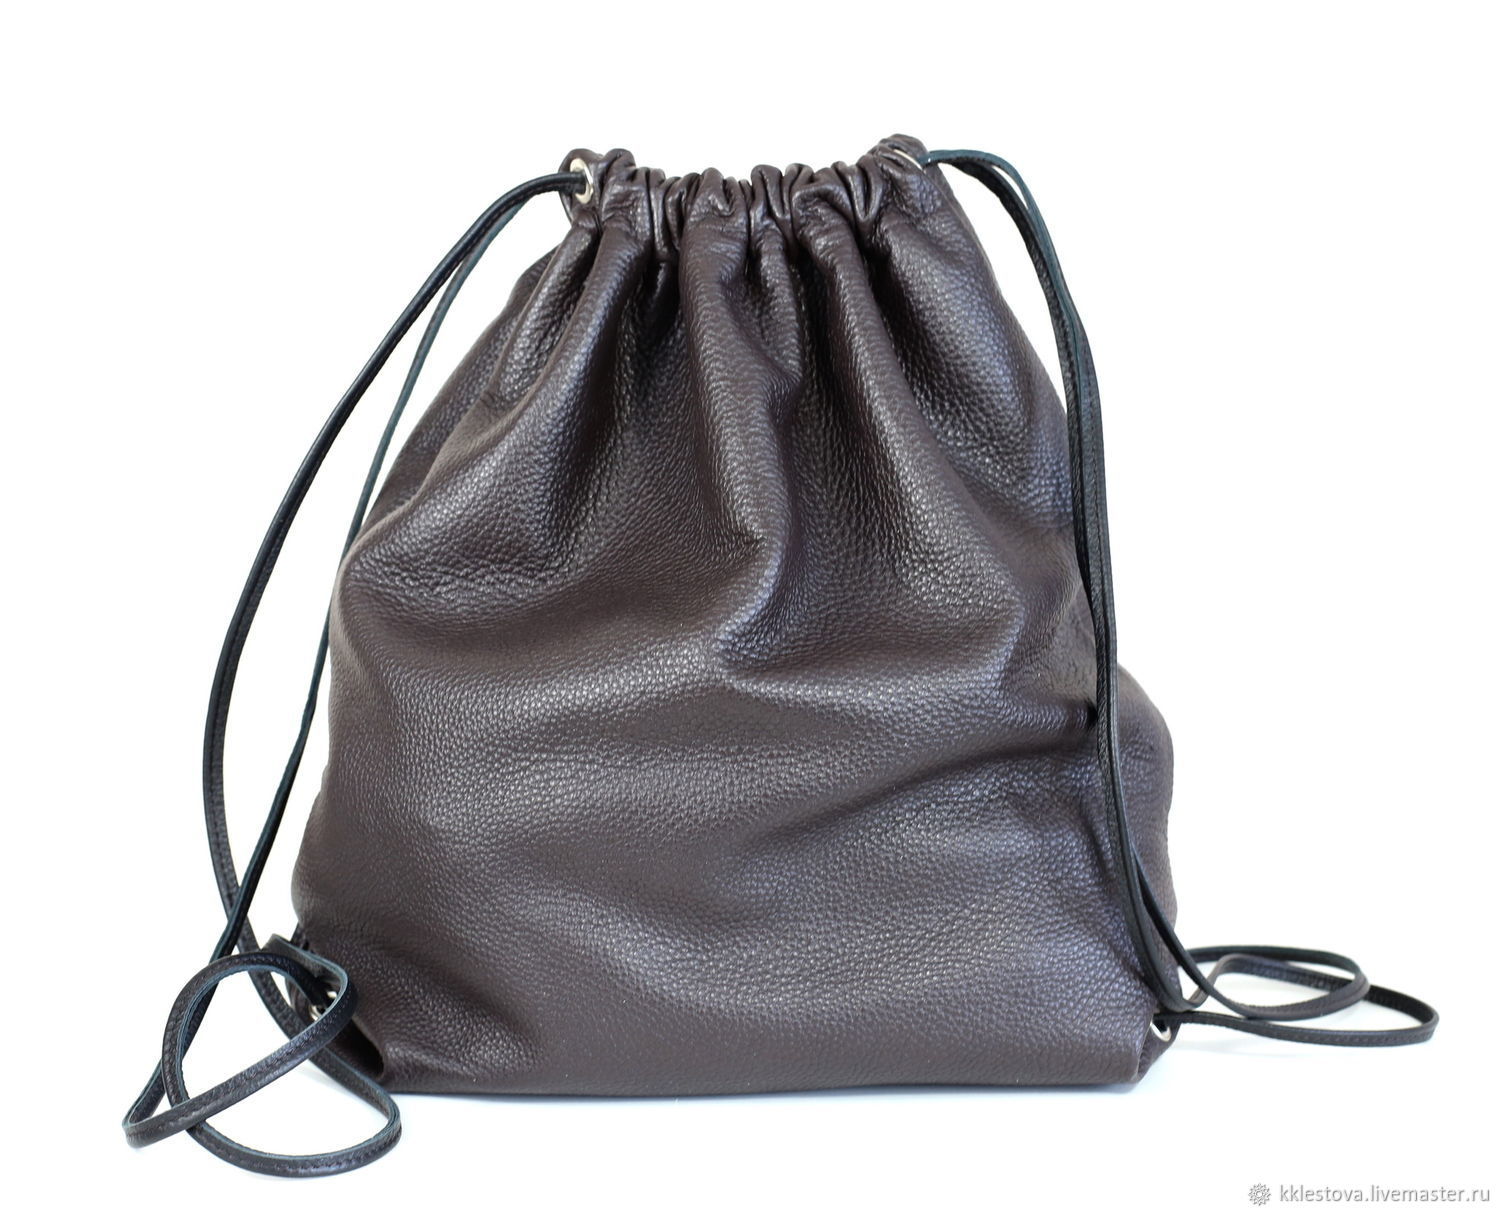 Chocolate Backpack leather big Bag with pocket, Backpacks, Moscow,  Фото №1